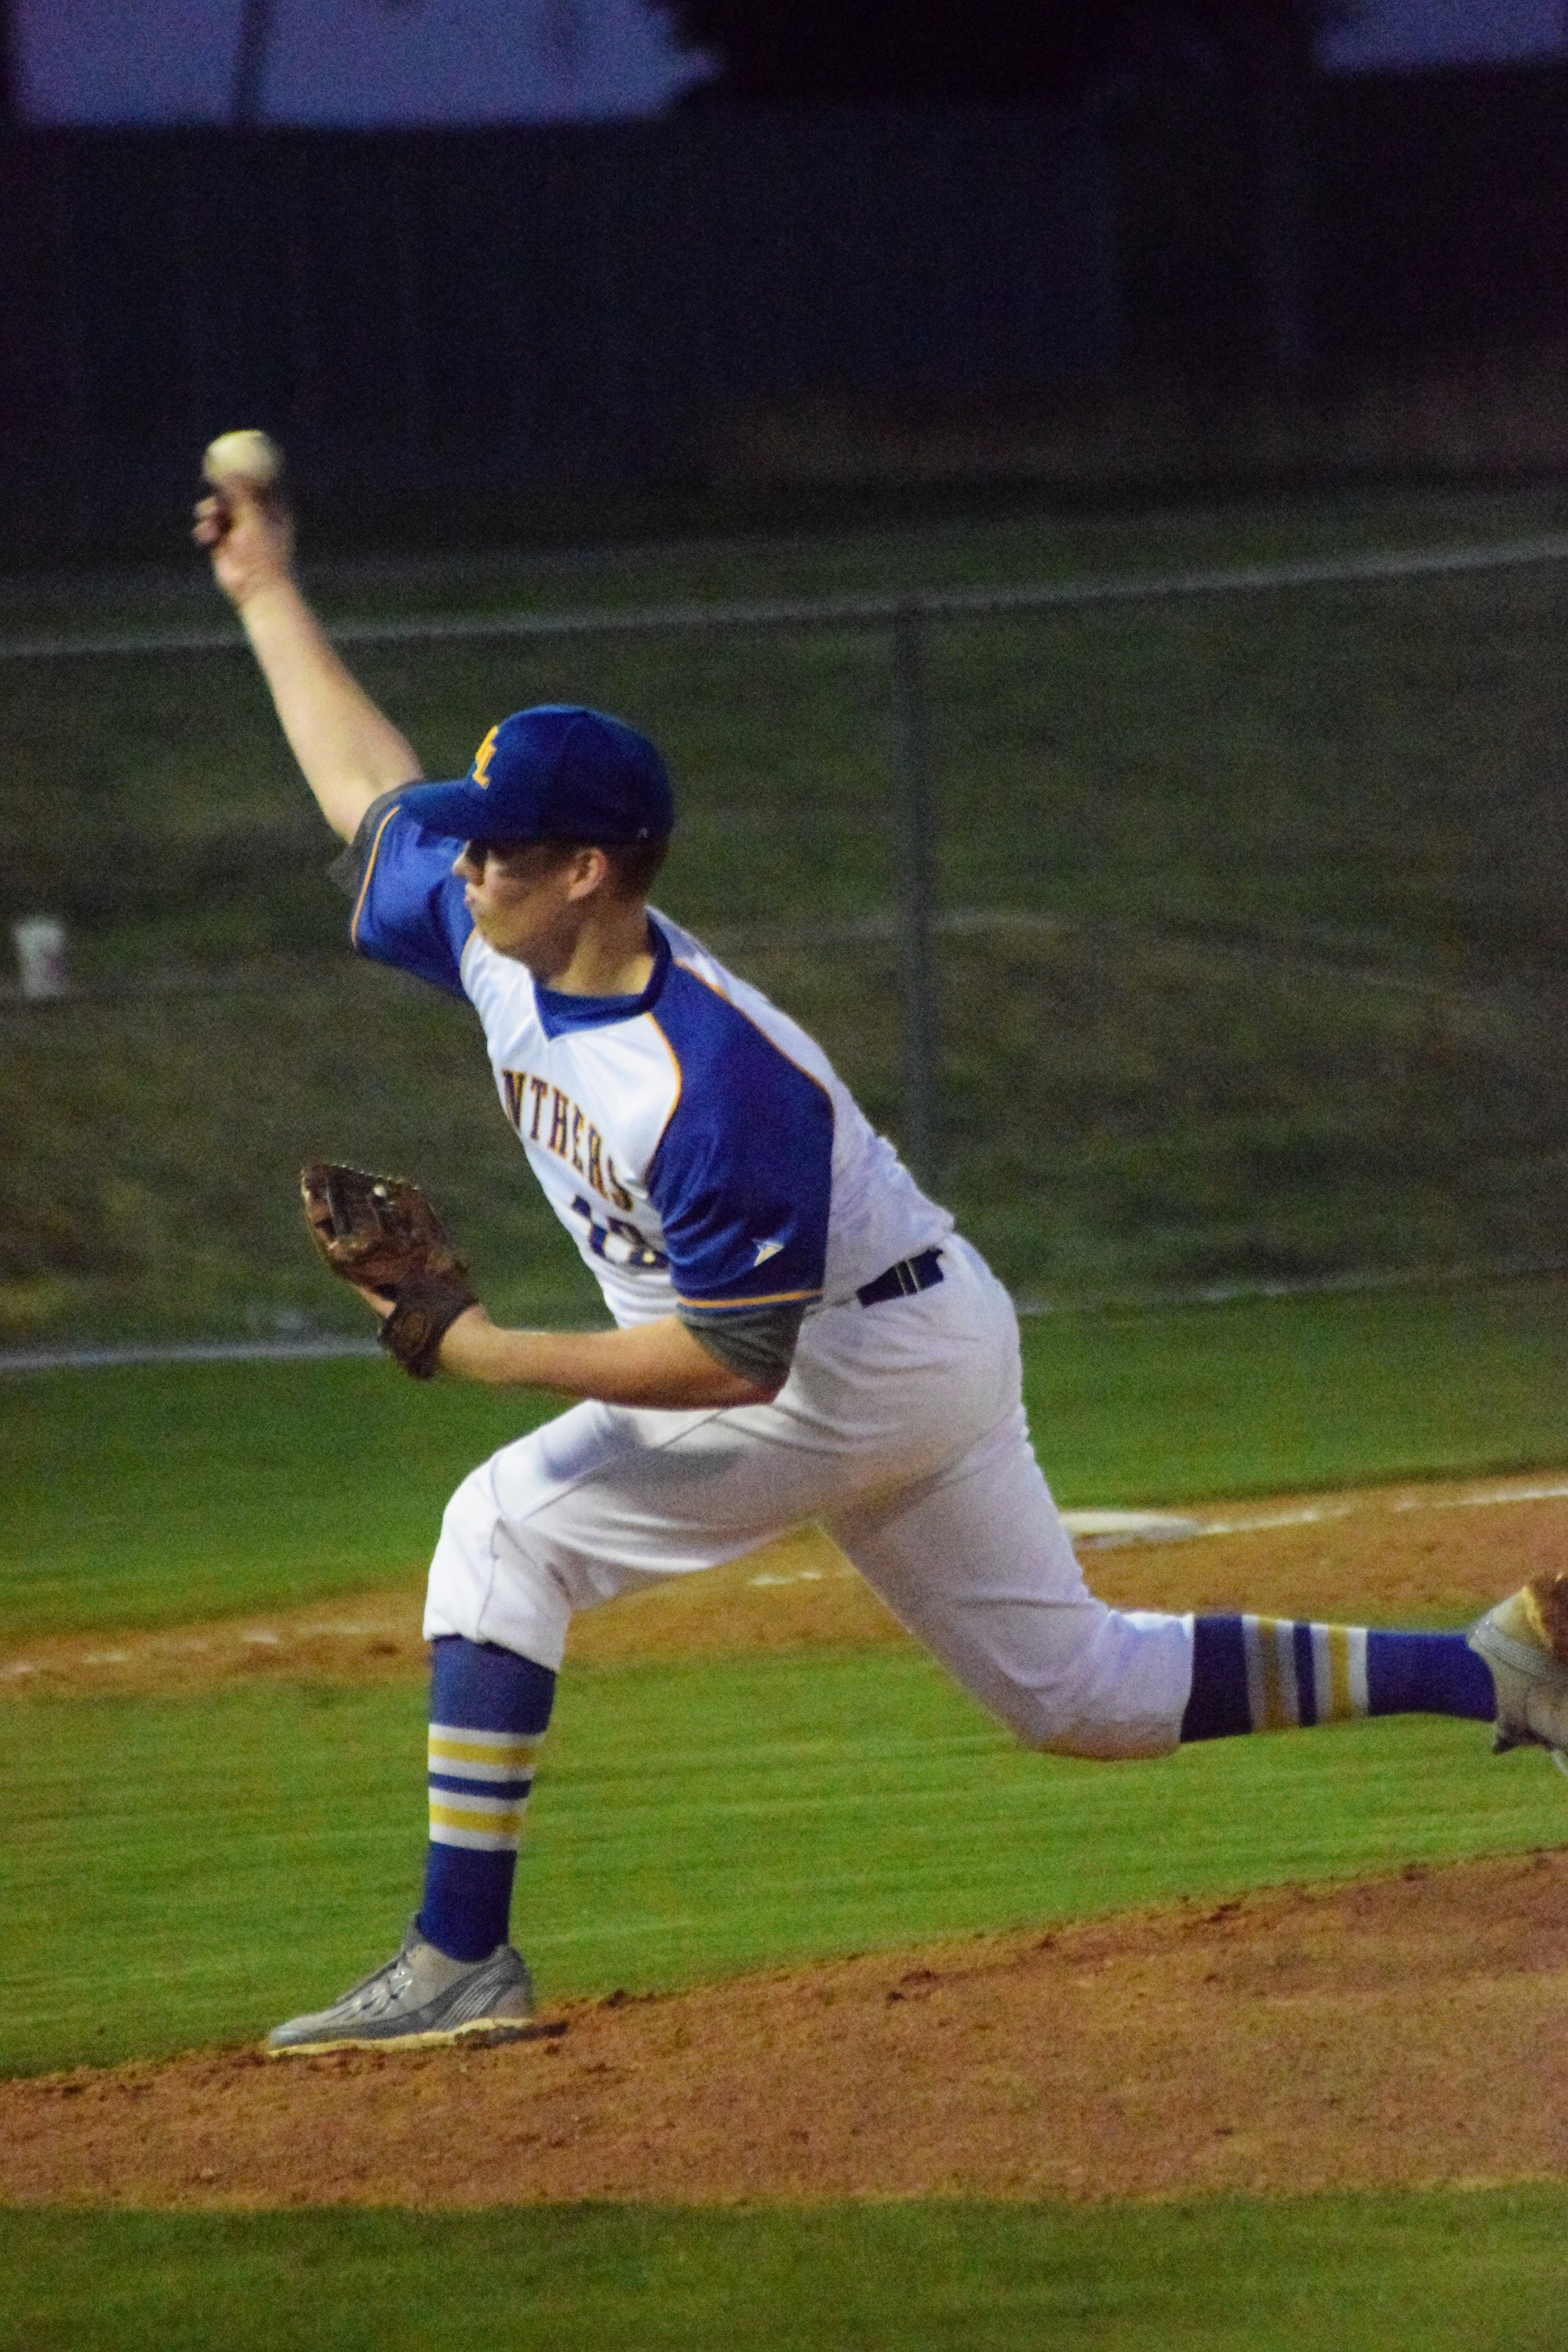 (Photo by Bev White) Ty Jones delivering a pitch earlier in the season